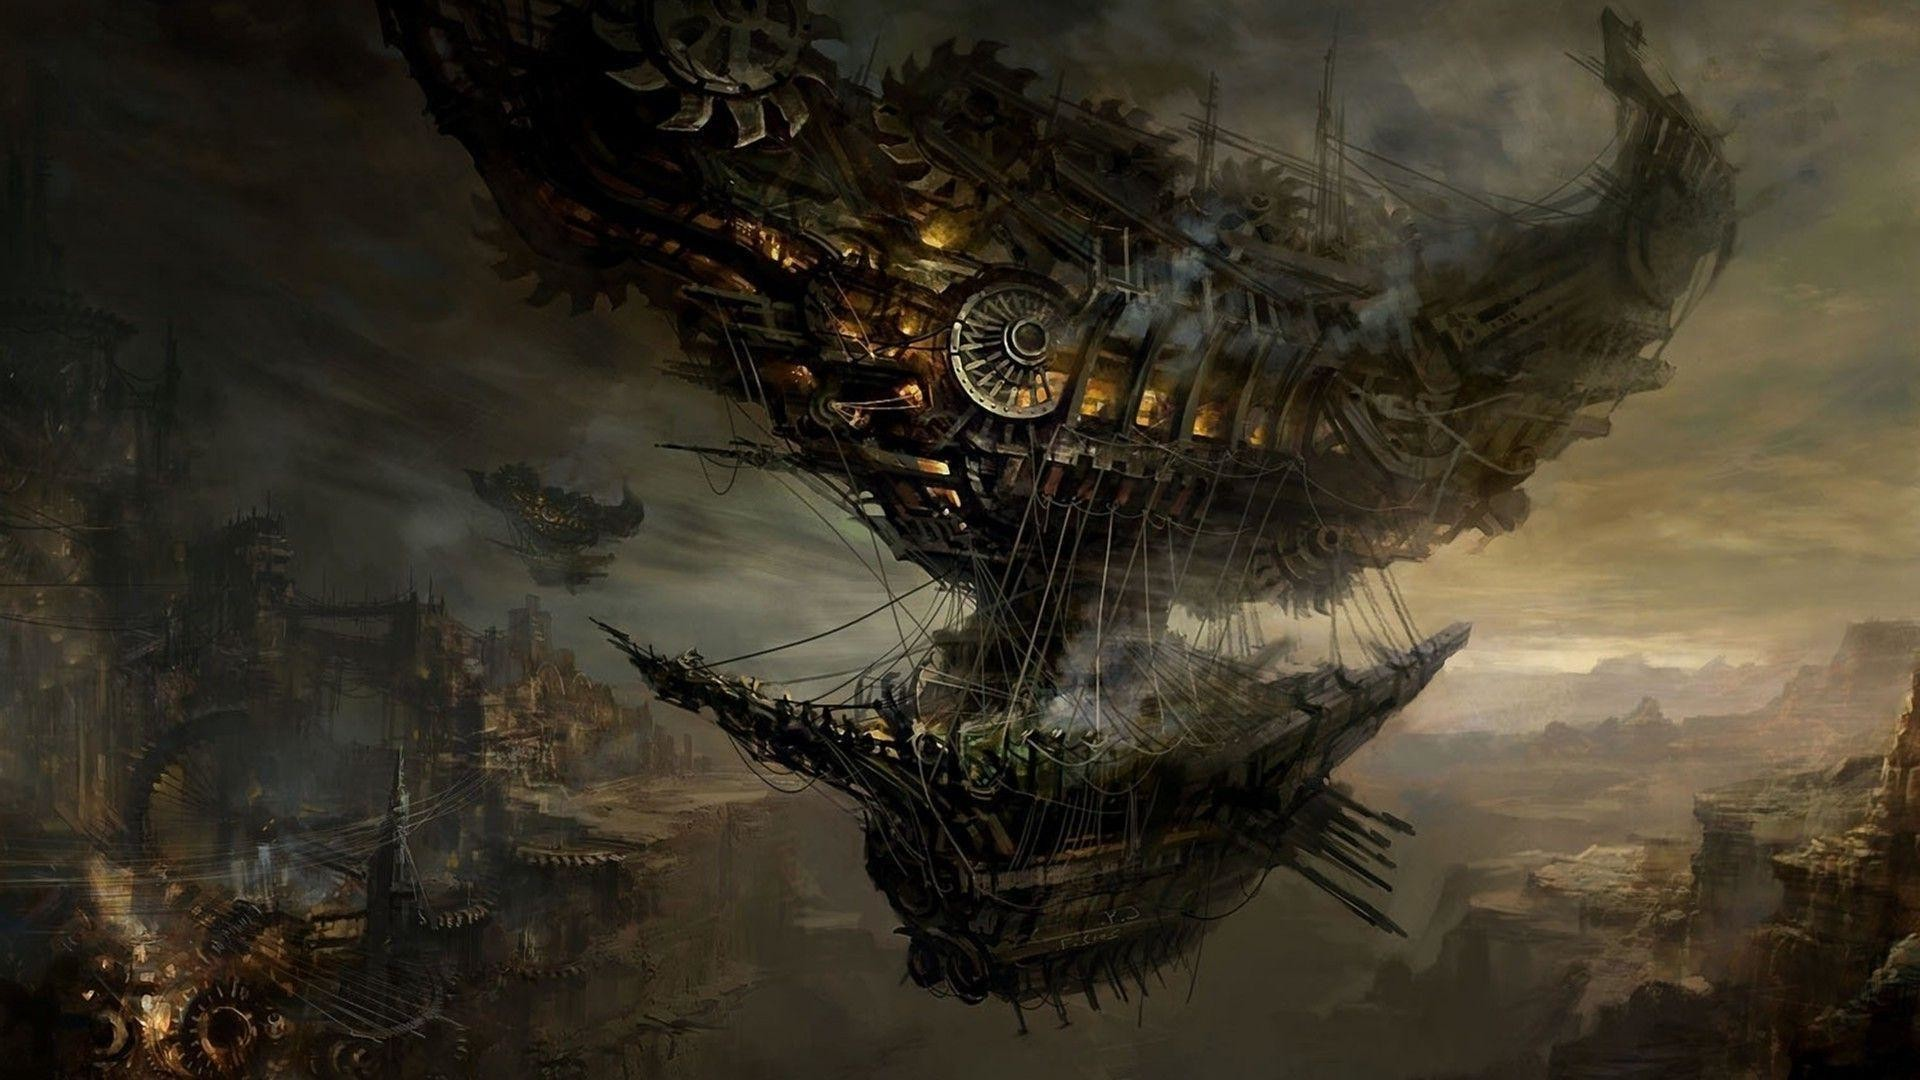 21x9 Wallpapers 71 Images: Steampunk Wallpapers (71+ Images